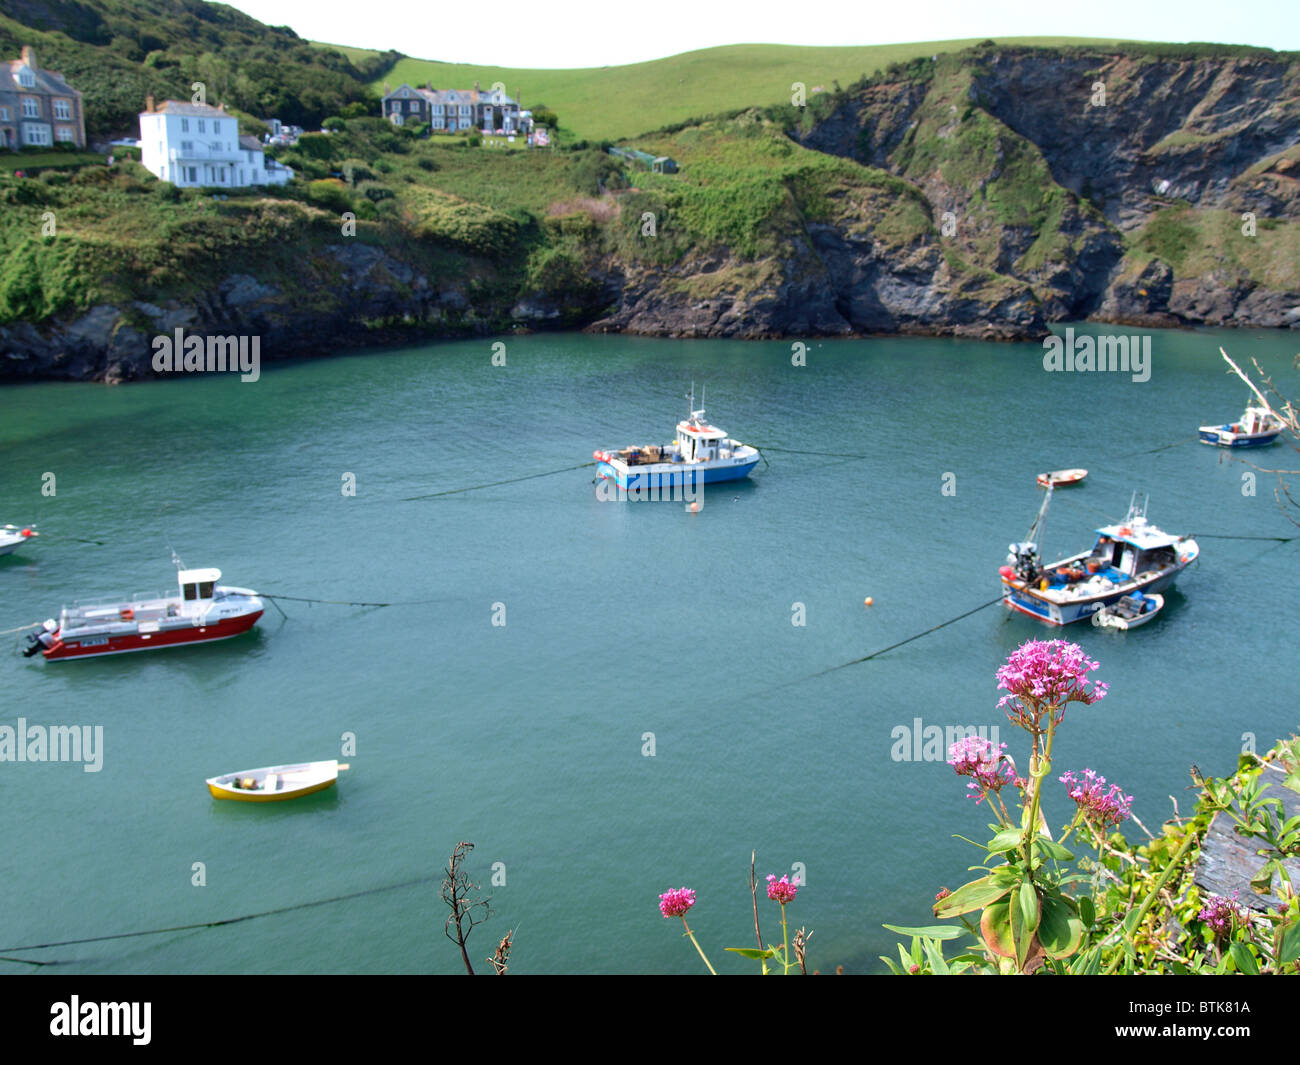 Port isaac, Cornwall, also known as Port Wenn in the tv program Doc Martin, UK - Stock Image